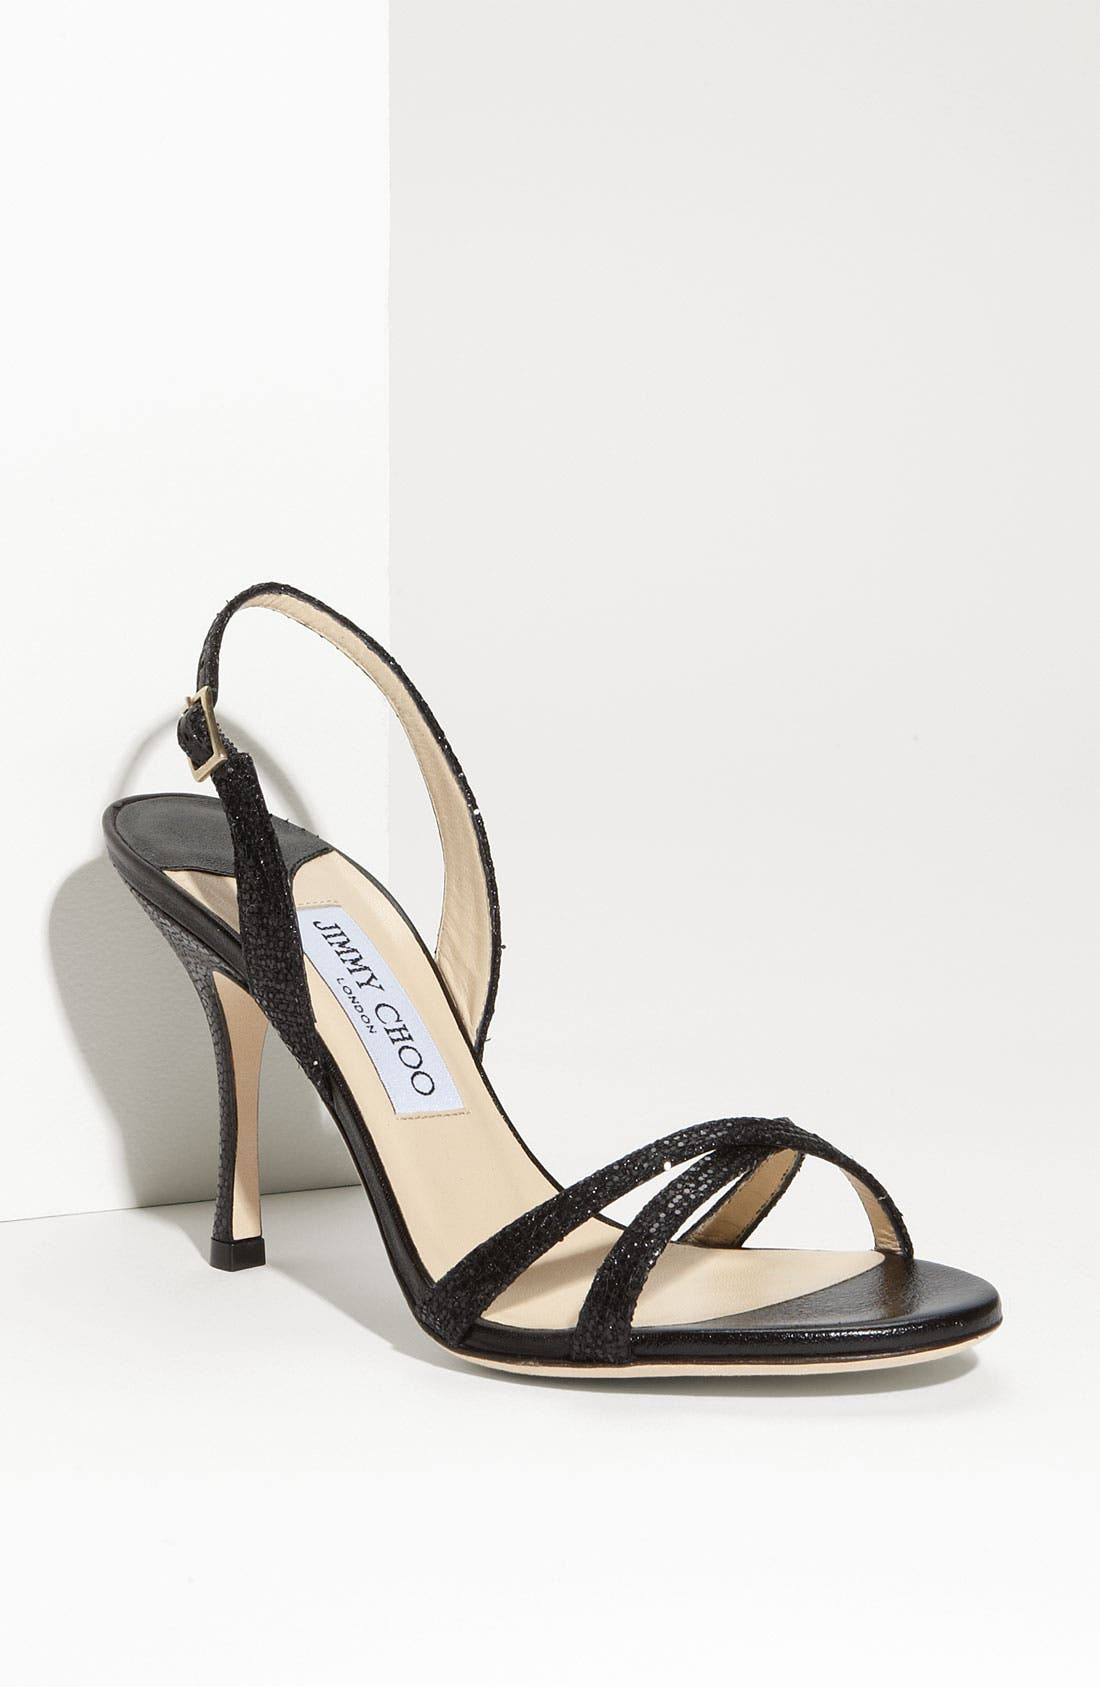 Main Image - Jimmy Choo 'India' Sandal